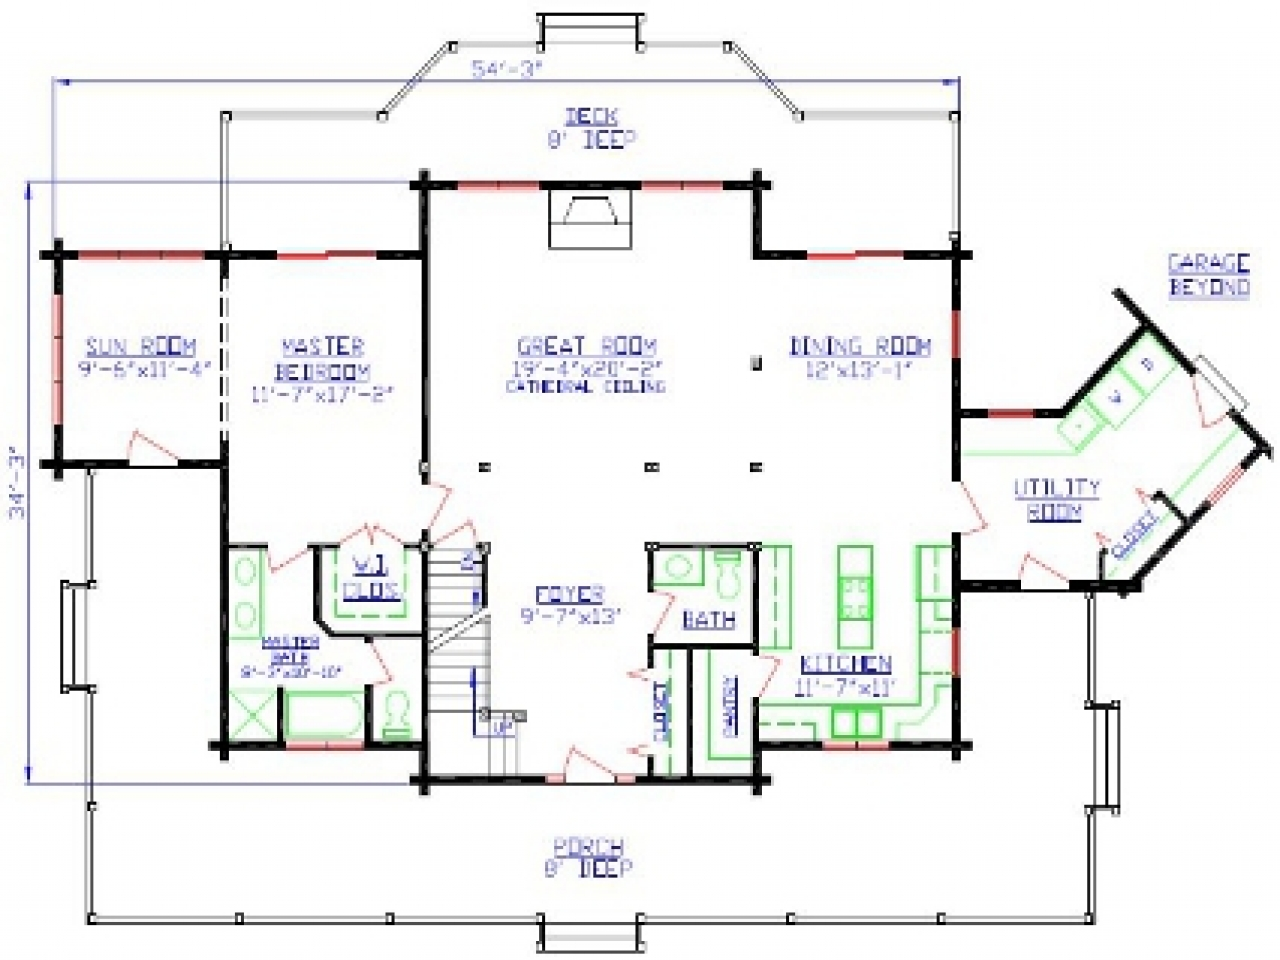 Free printable house floor plans free printable house for Printable blueprints